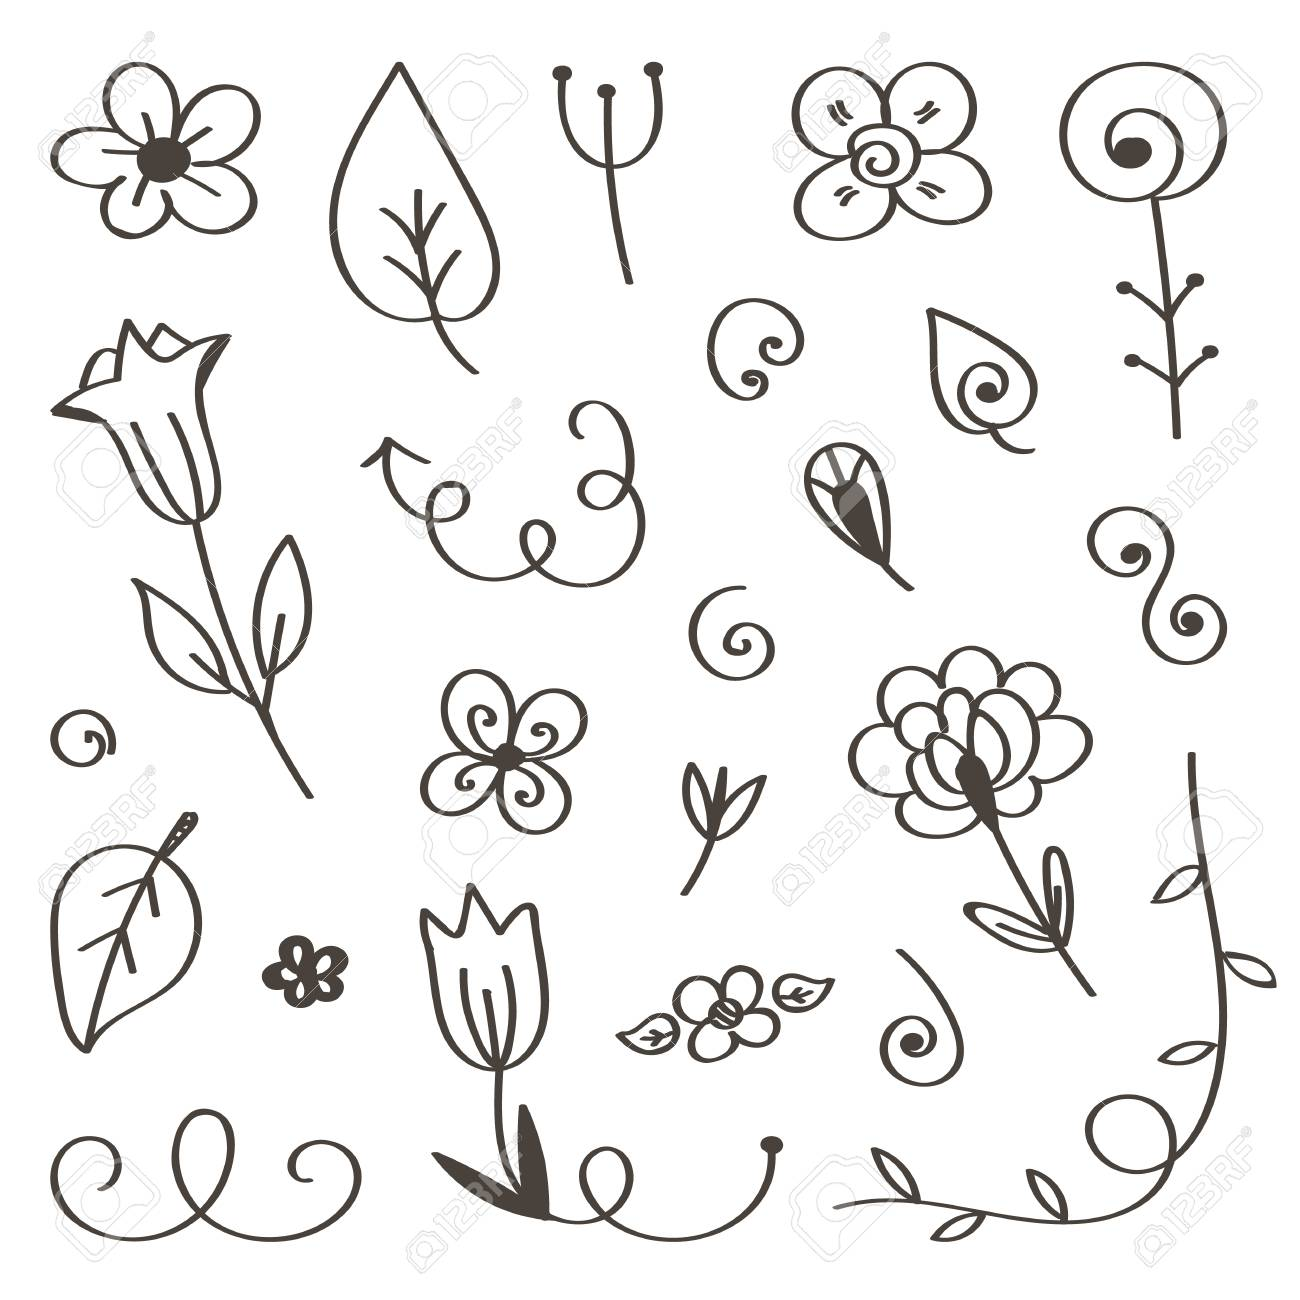 Set of hand-drawn, doodle flowers and leaves isolated on white